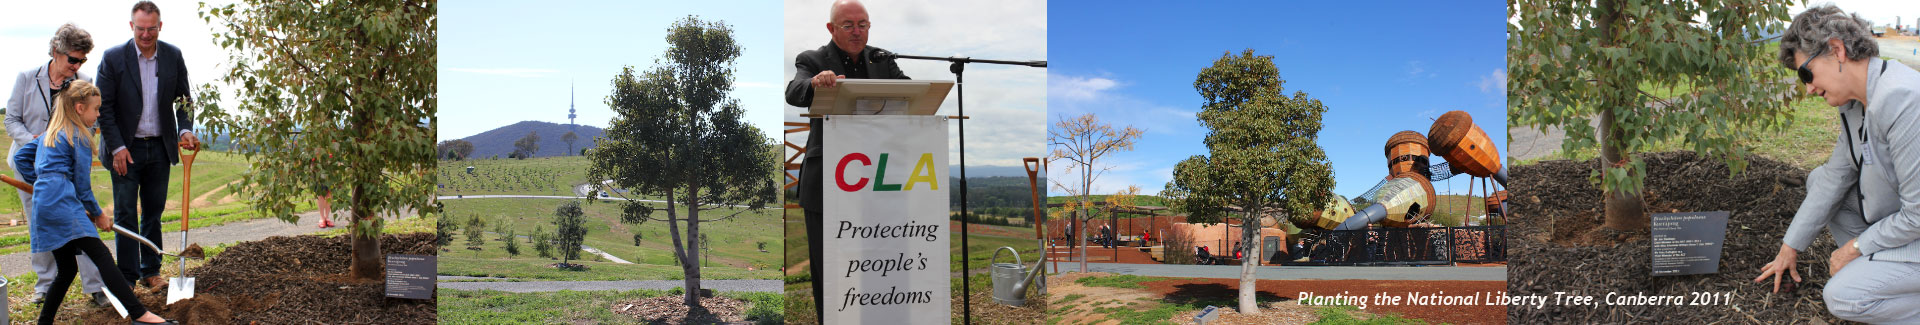 Sept 2015 newsletter: List of issues shows how our liberties, rights are under attack